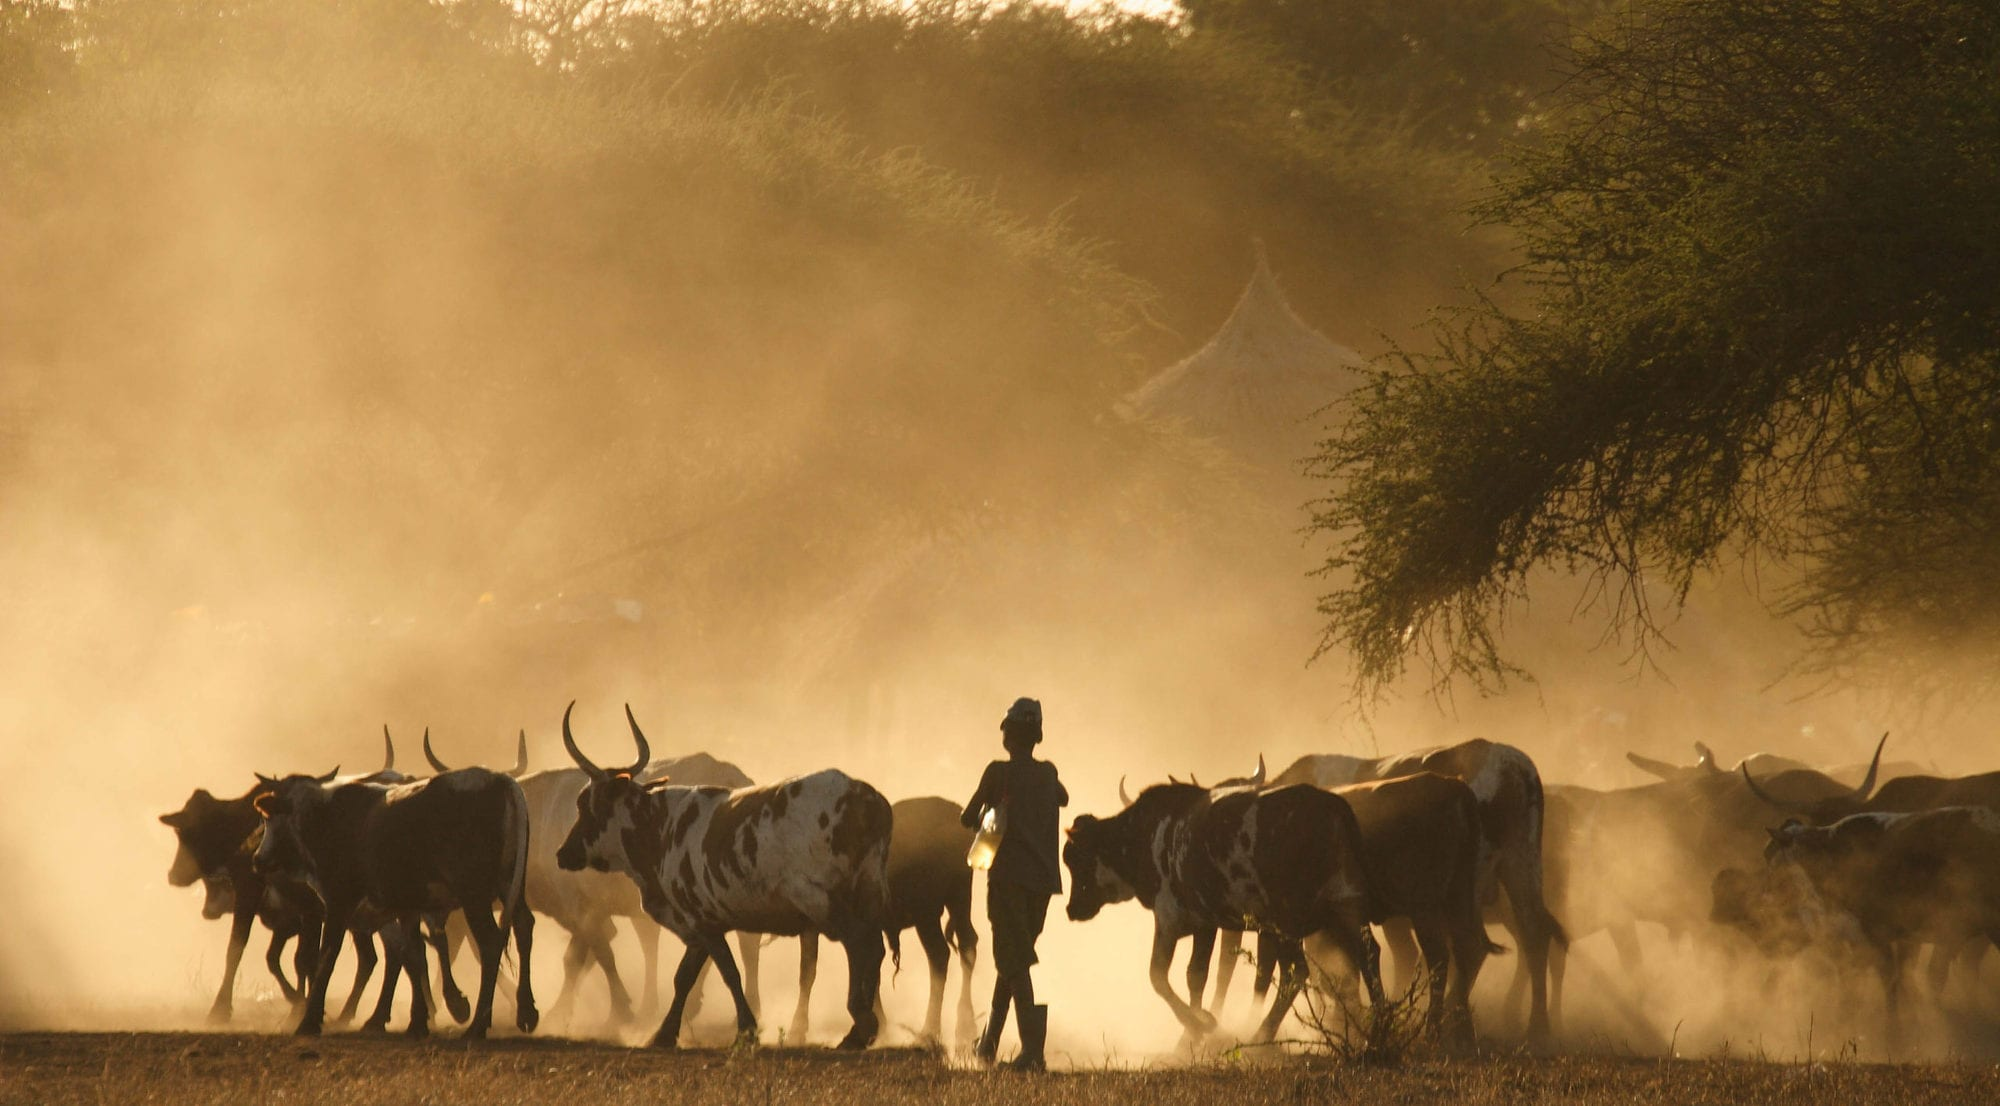 A boy returns home with his family herd at dusk in Lhate Village, Chokwe, Mozambique (photo credit: ILRI/Stevie Mann).